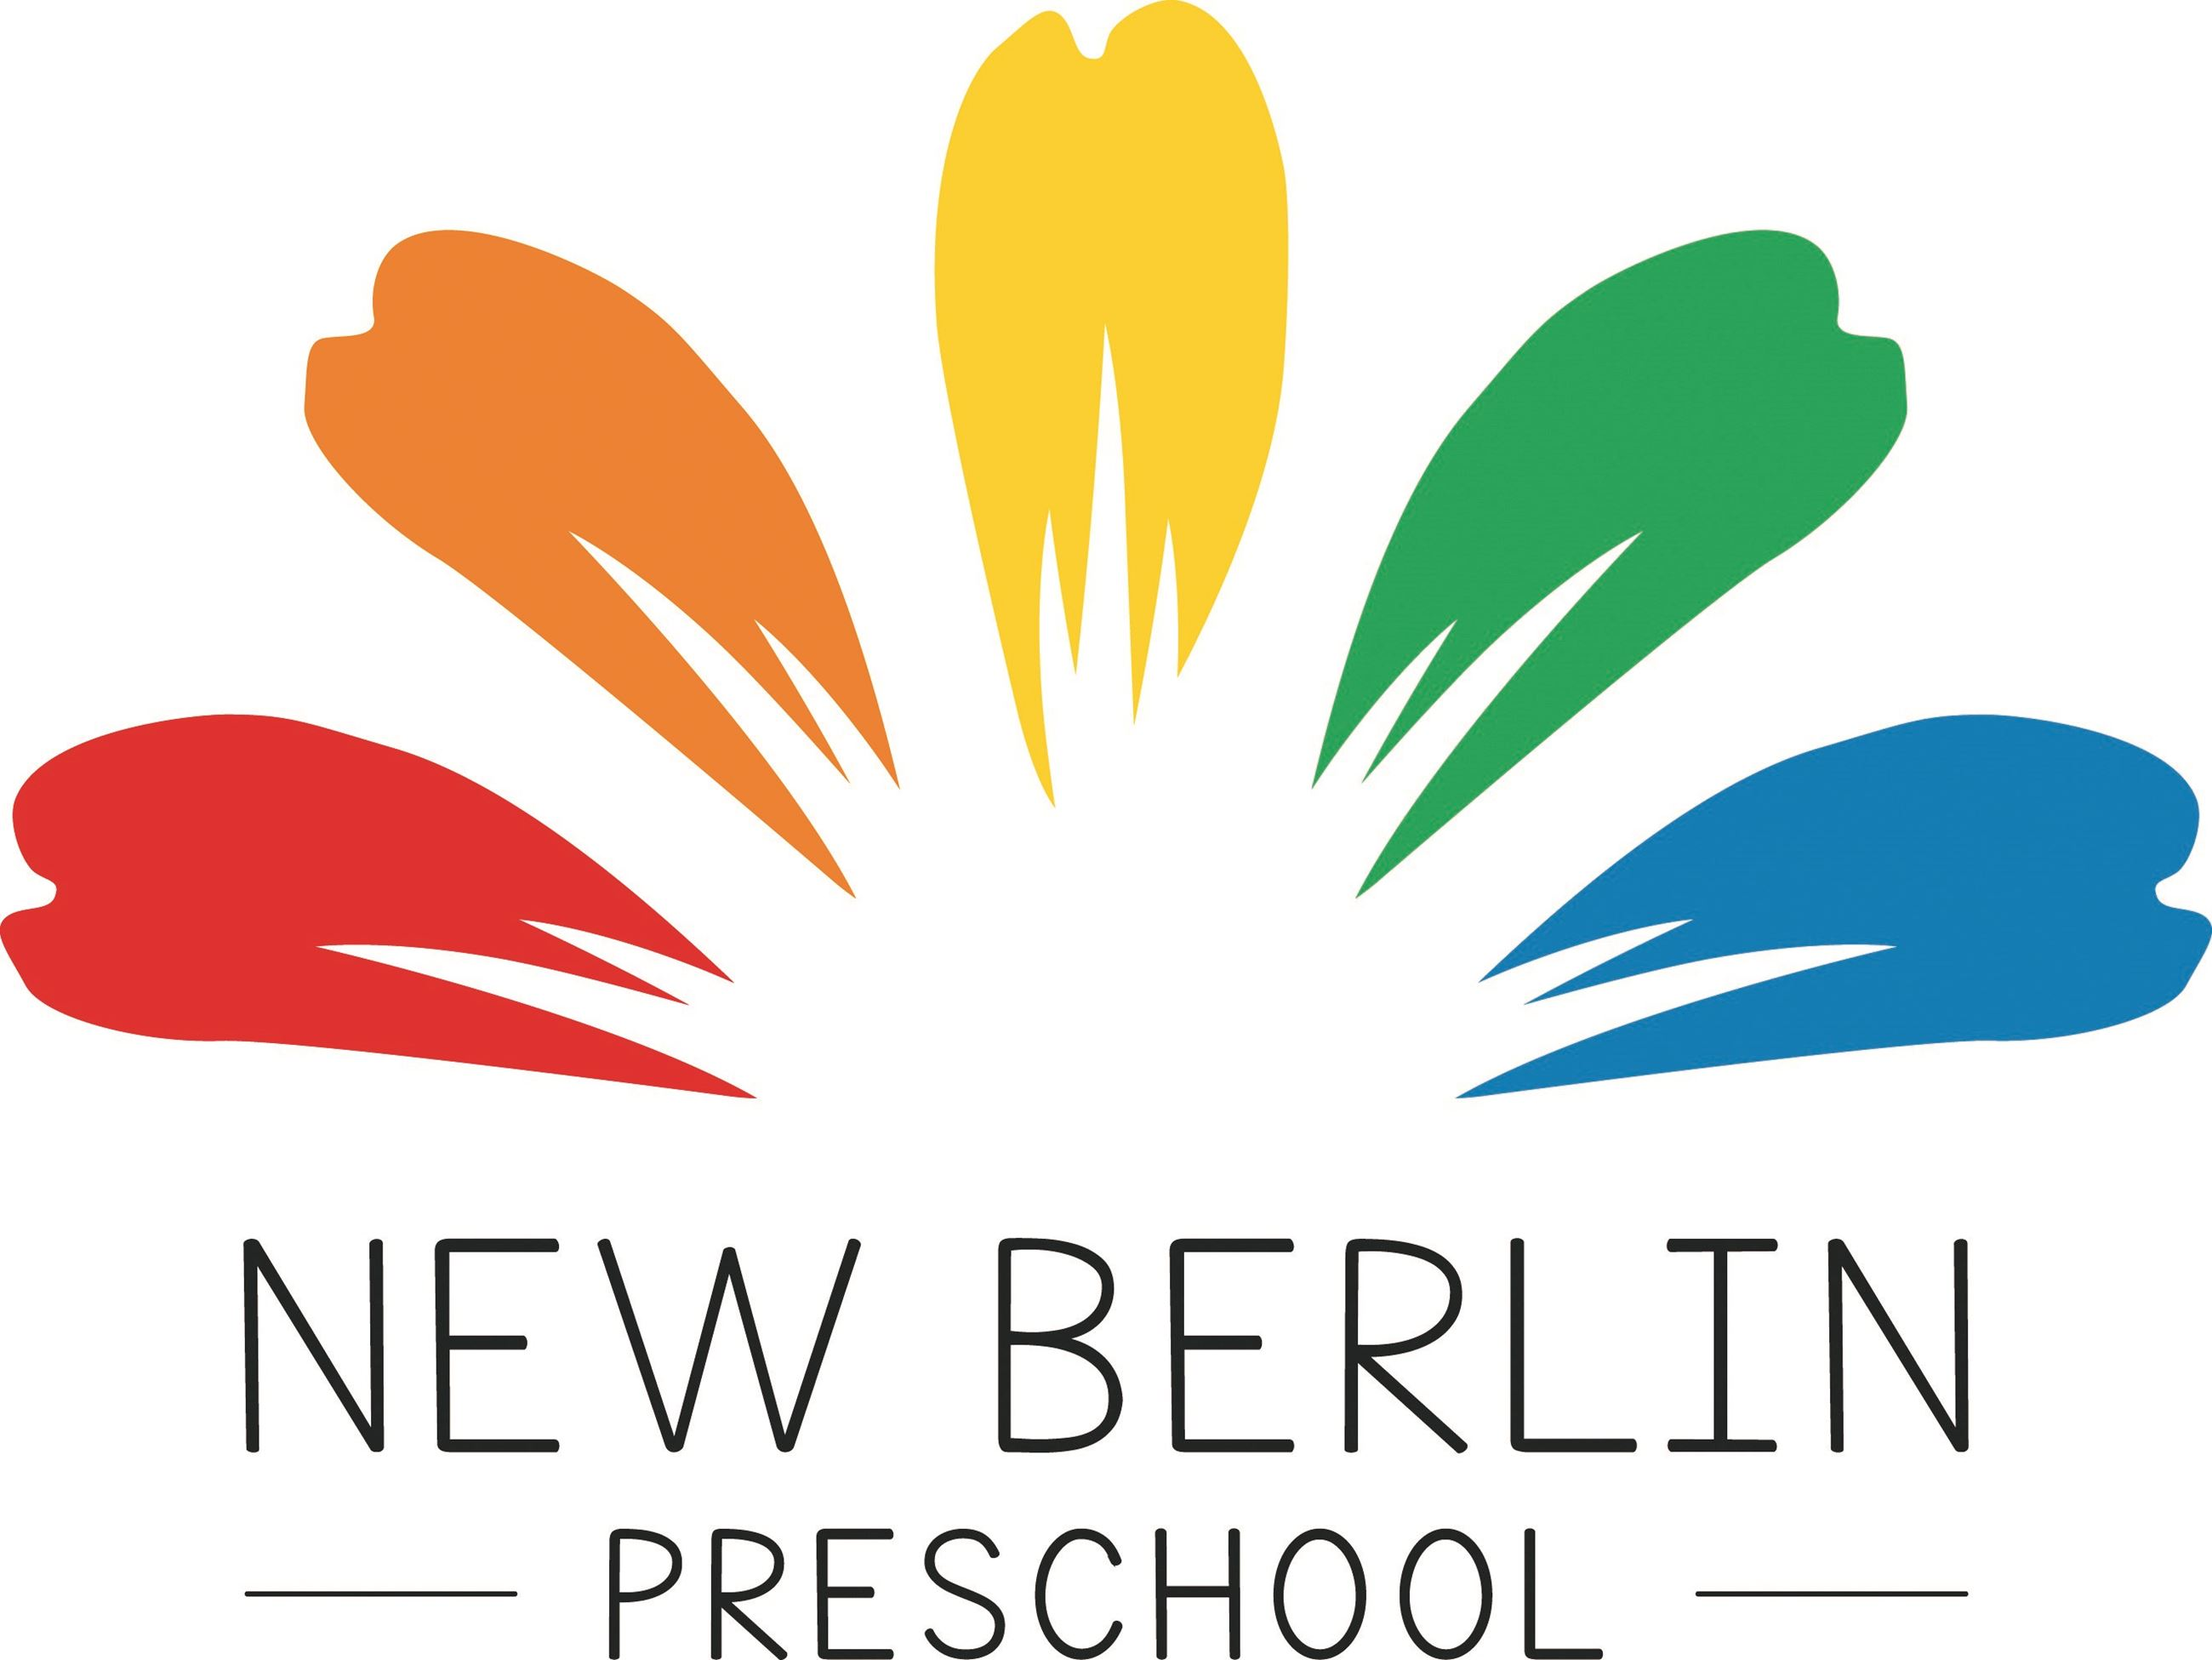 New Berlin Preschool